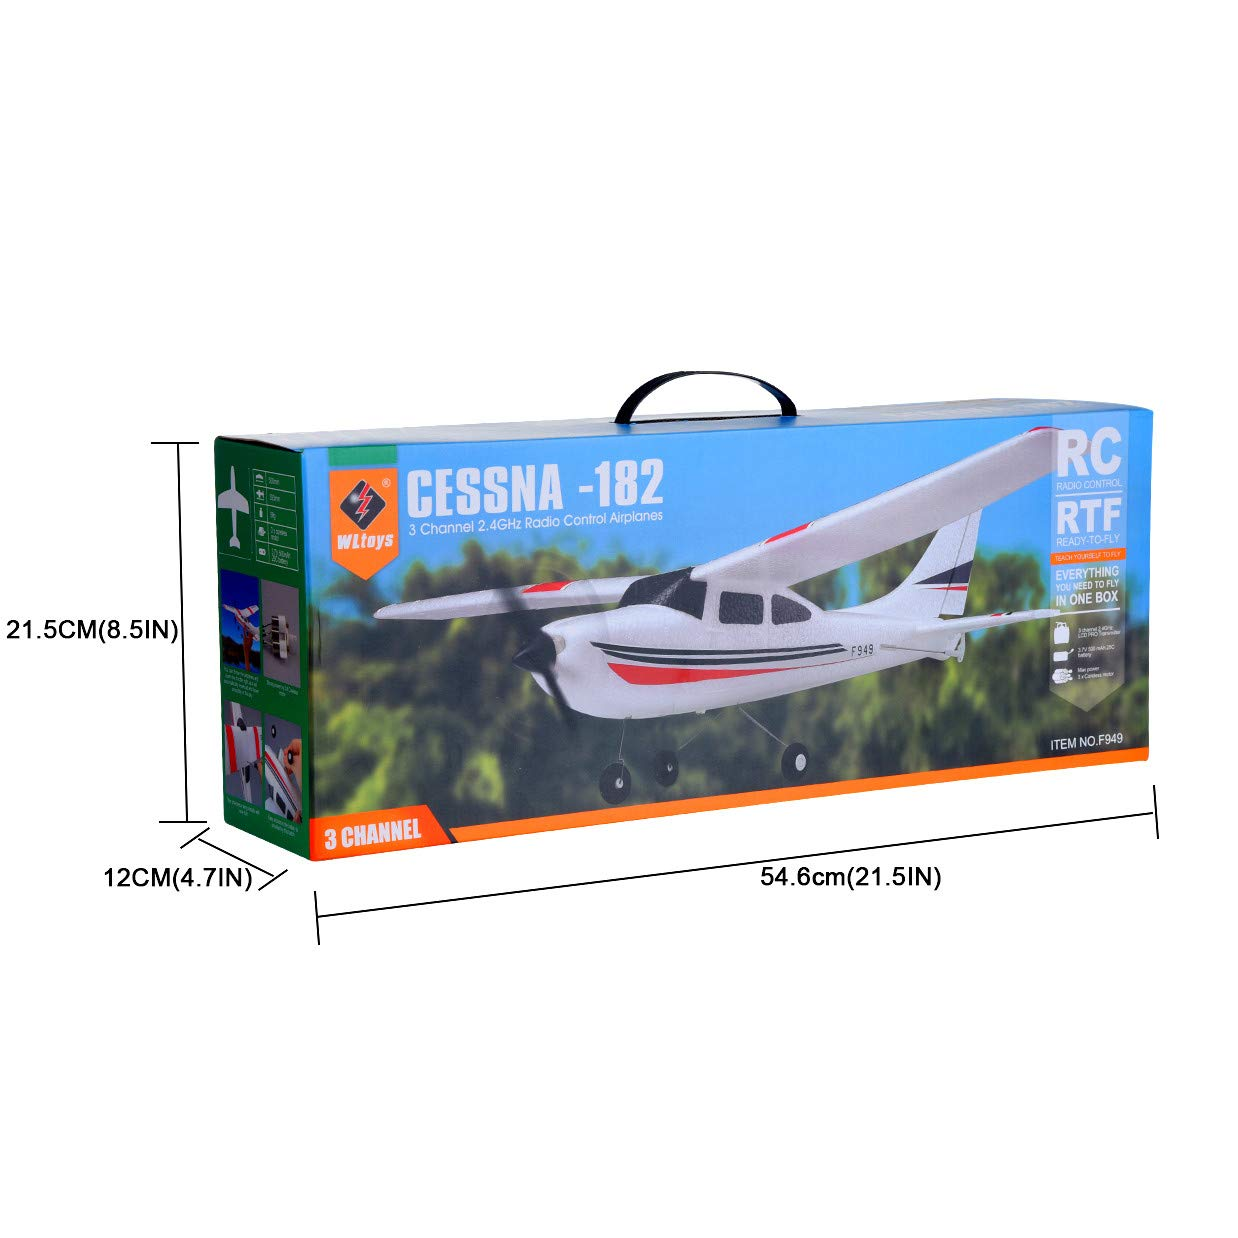 Remote Control Airplane for Beginners &Intermediate Flight Game Players F949 3CH 2.4G RC Airplane RTF Glider EPP Composite Material 14+,Designed According To Cessna-182 Plane (White) by succeedtop ❤️ Ship from US ❤️ (Image #8)